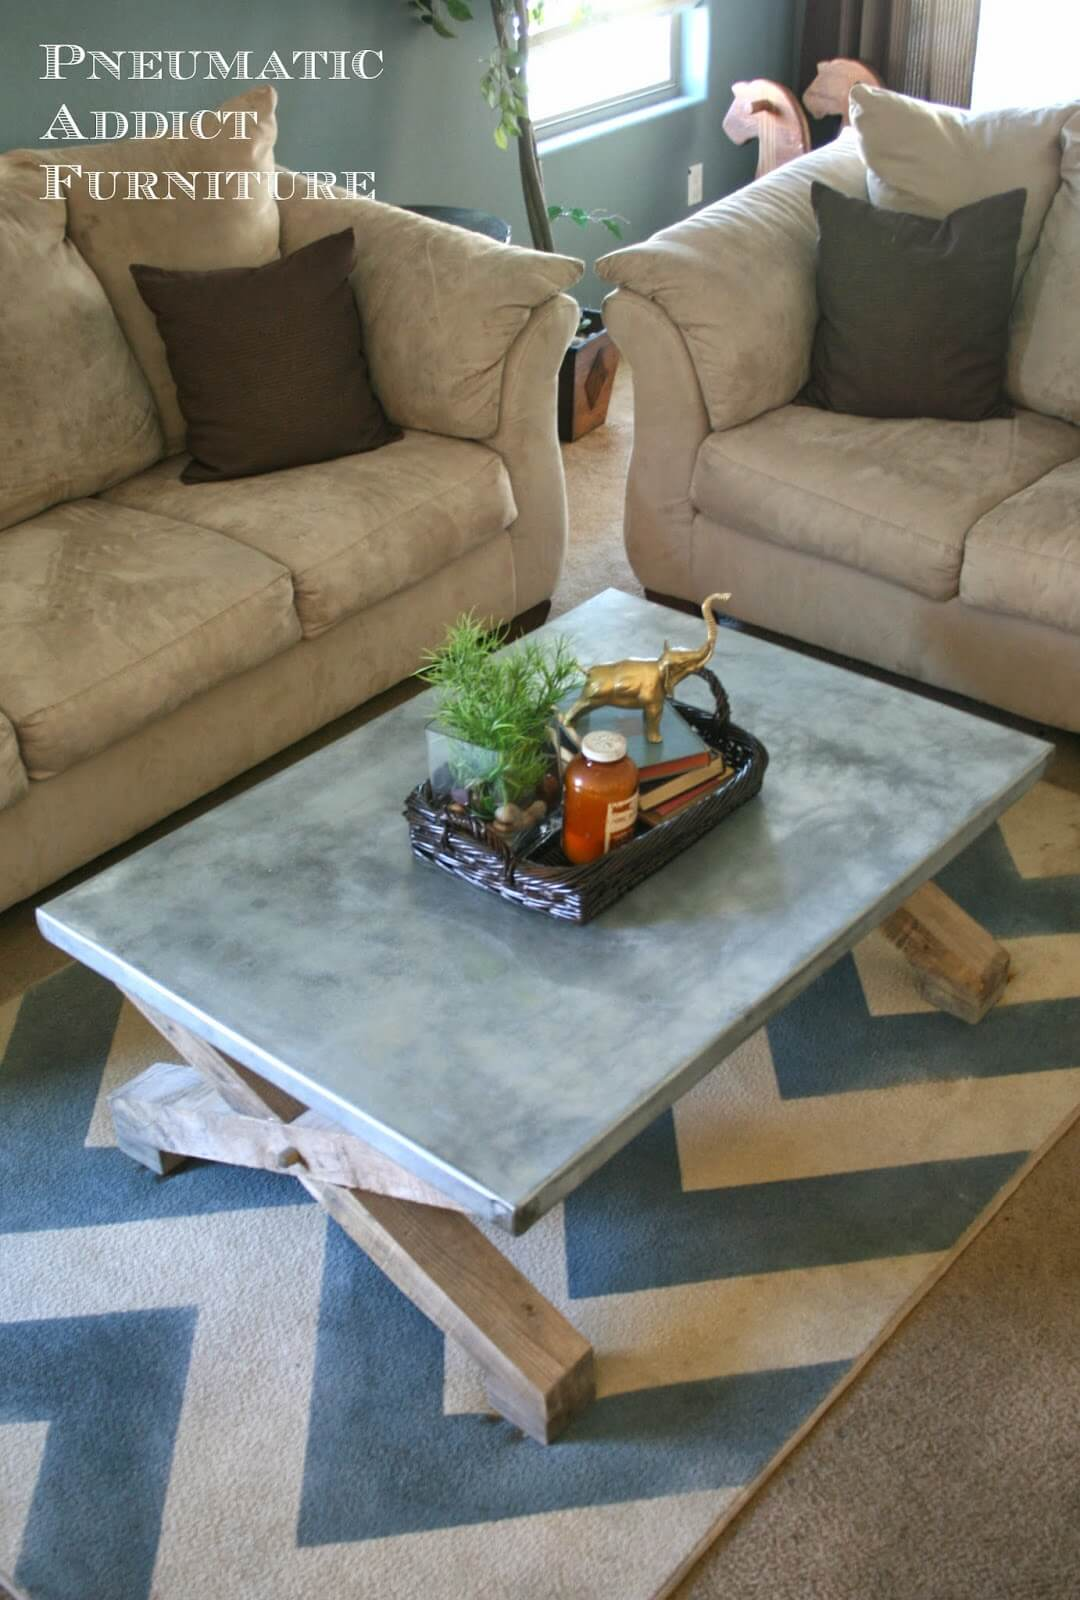 From The Work Bench to The Coffee Table